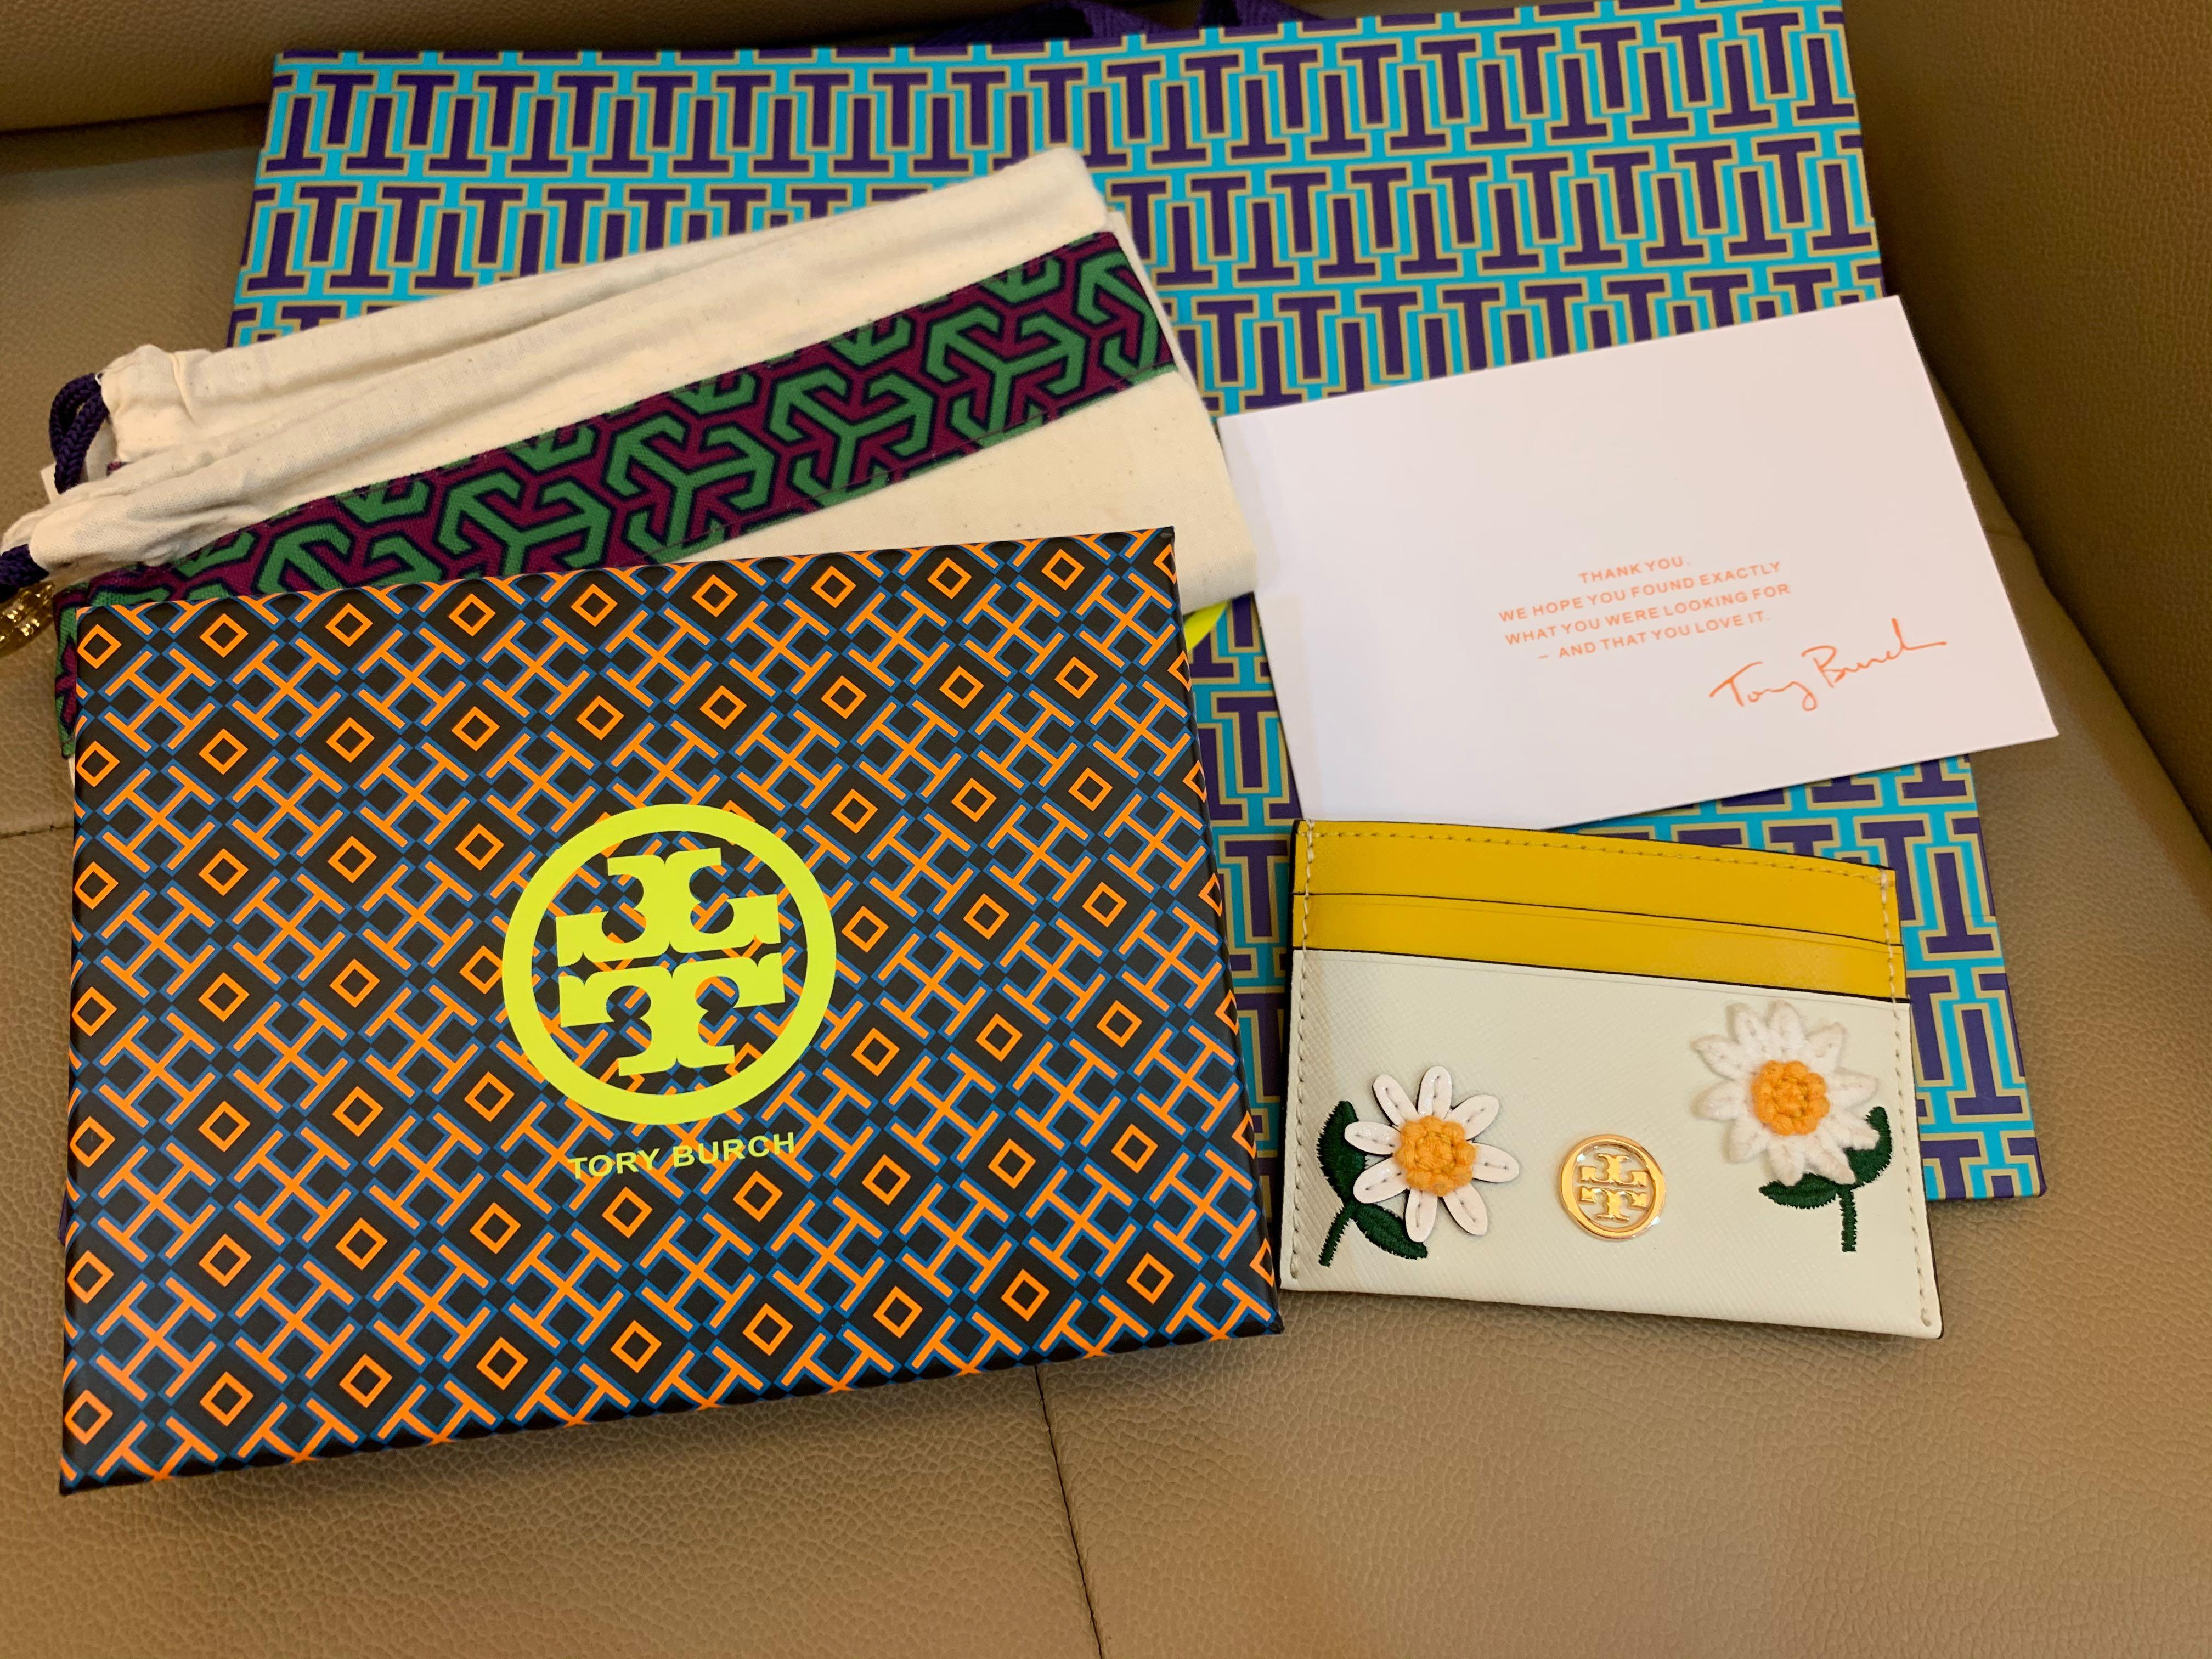 Ready Stock authentic Tory Burch daisy floral card holder in floral